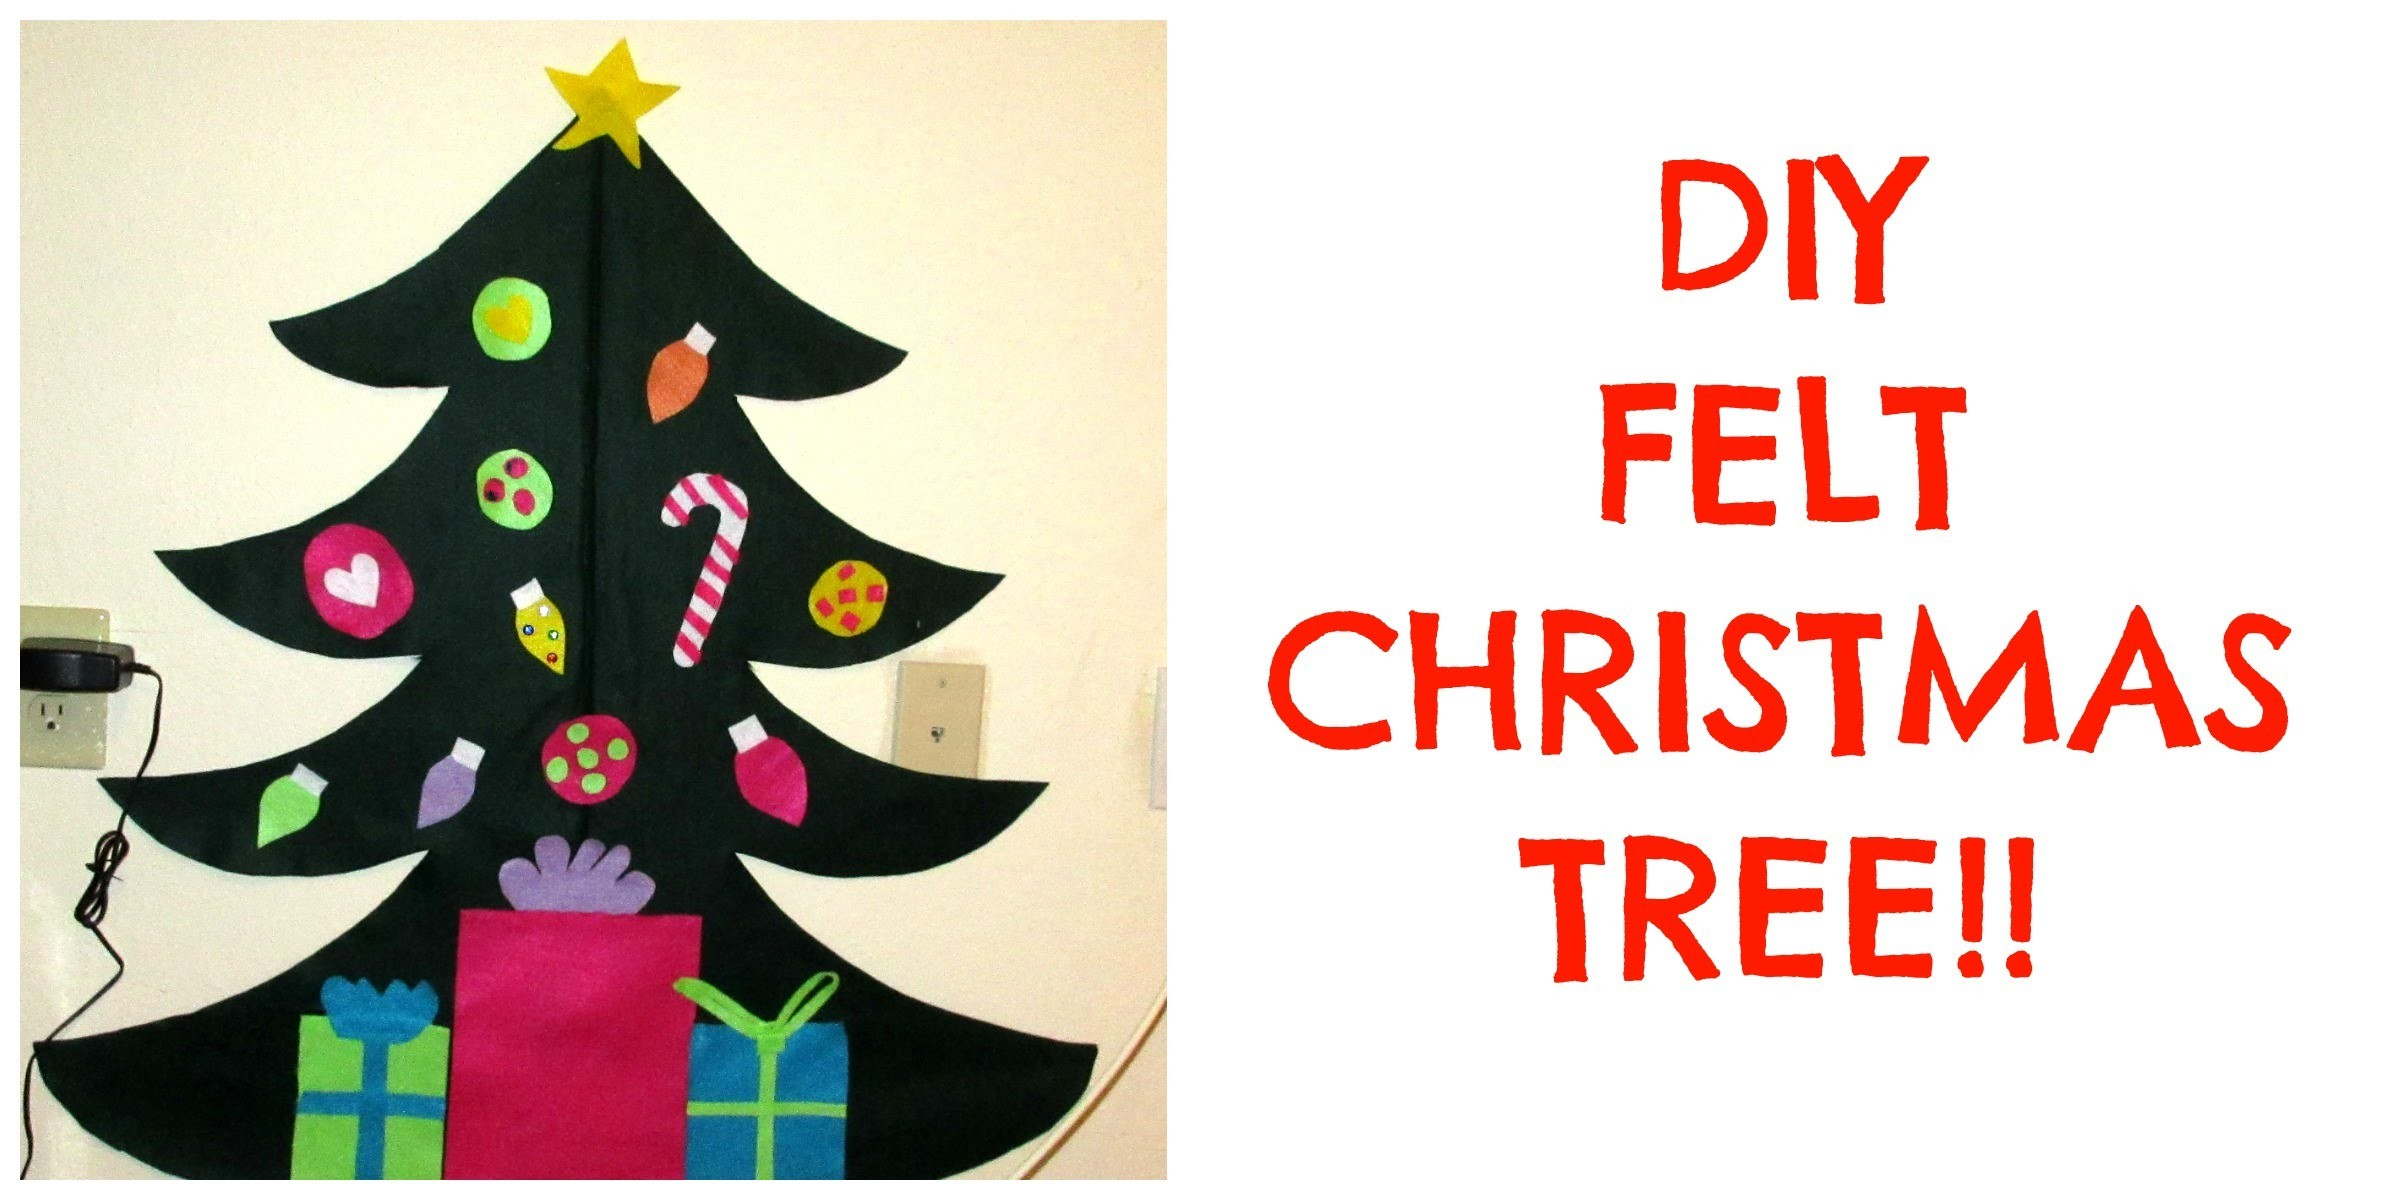 DIY FELT CHRISTMAS TREE - TODDLER ACTIVITY!